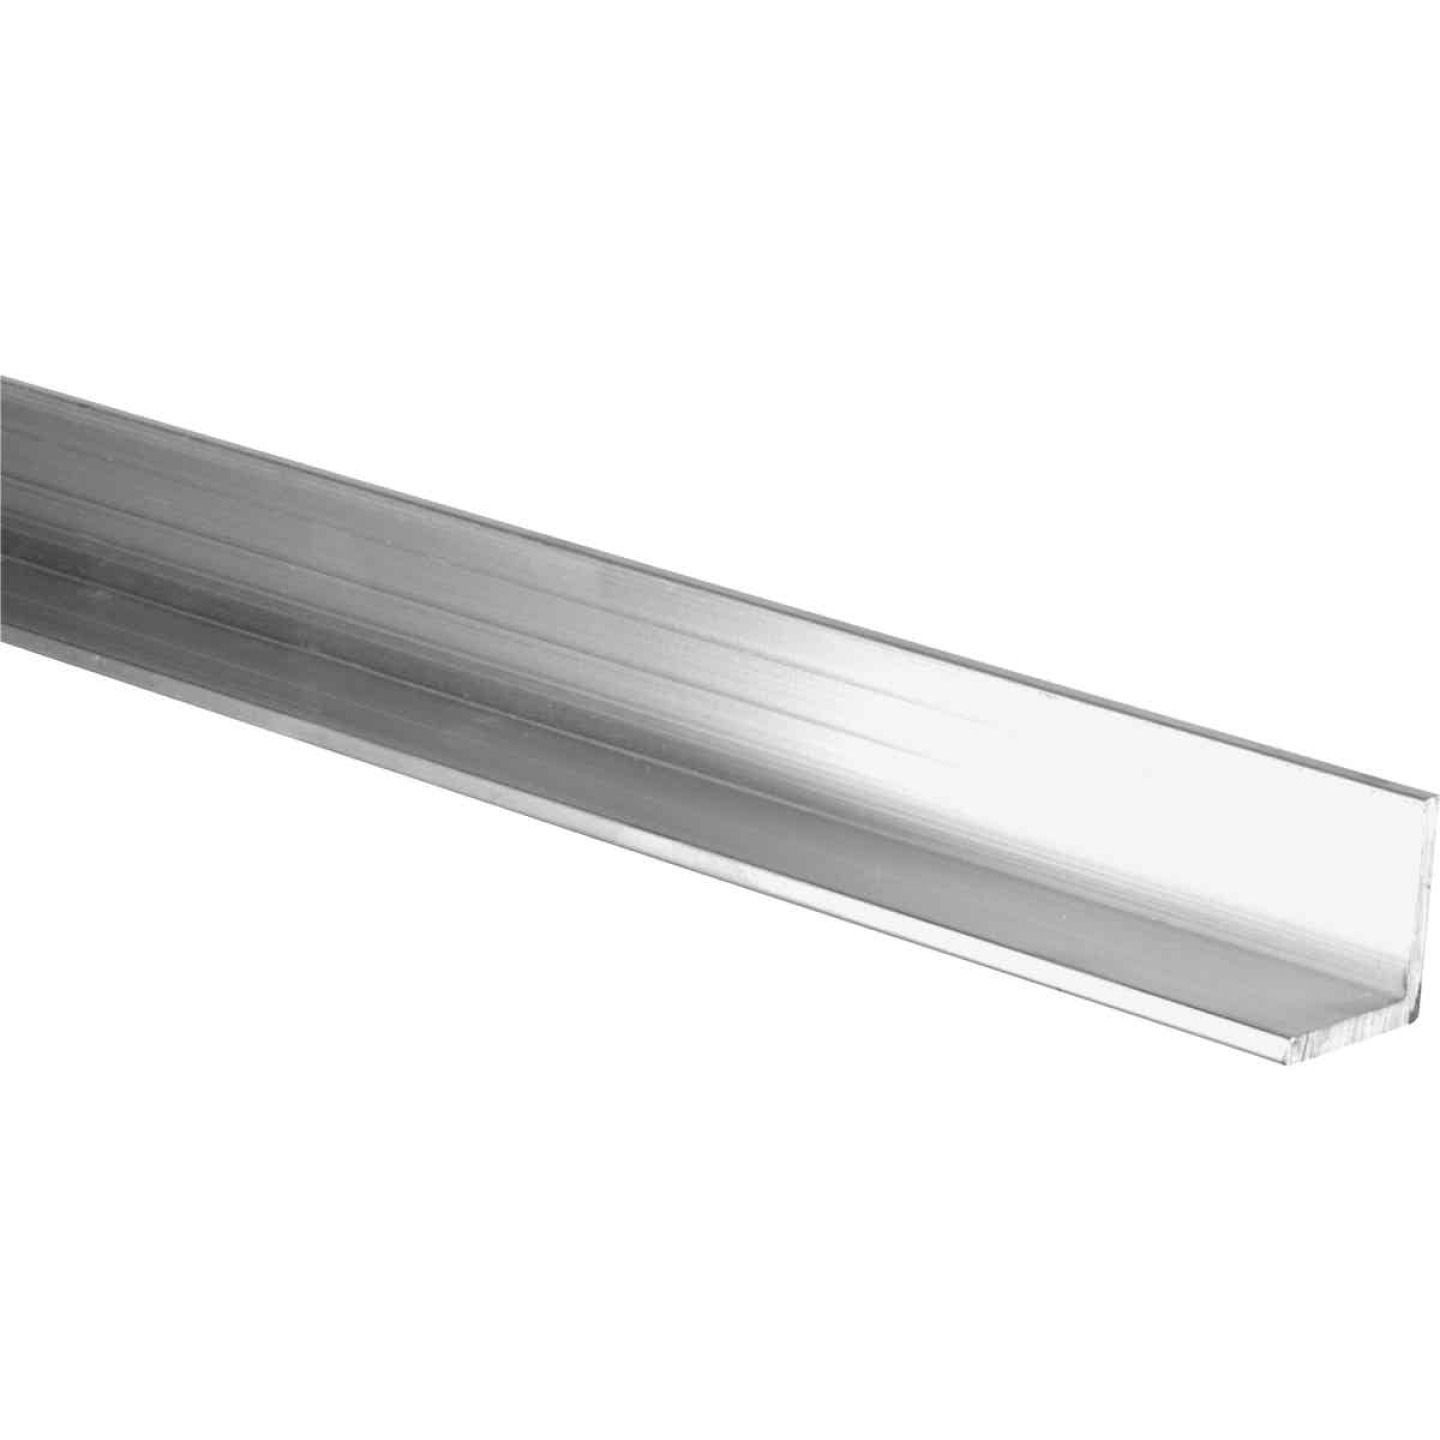 HILLMAN Steelworks Mill 1-1/2 In. x 6 Ft., 1/8 In. Aluminum Solid Angle Image 1